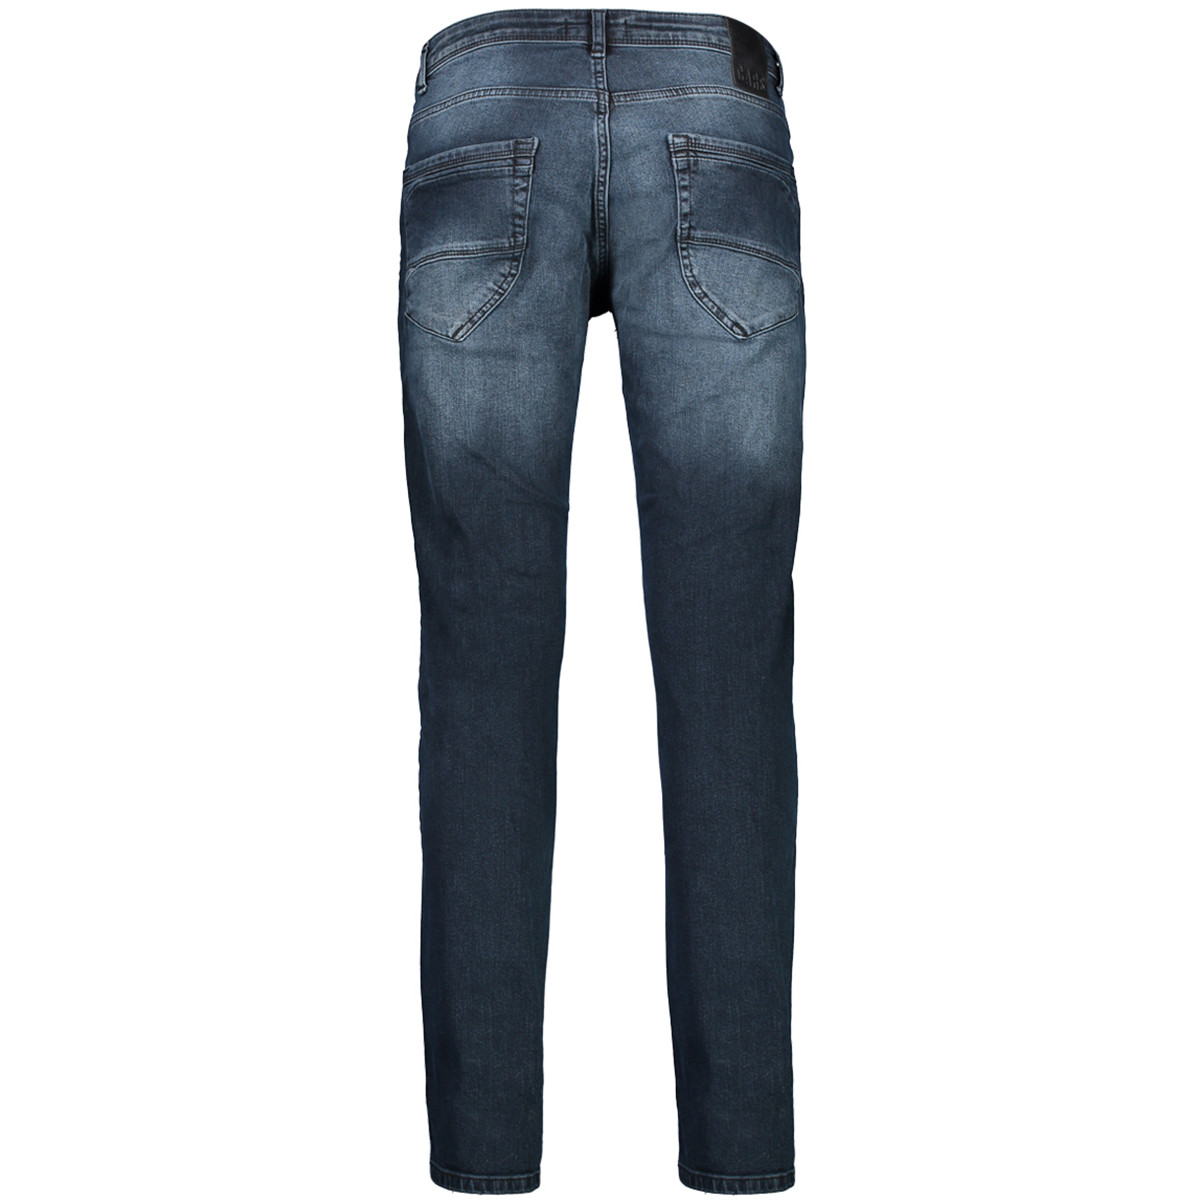 blast den 7842893 cars jeans blue black